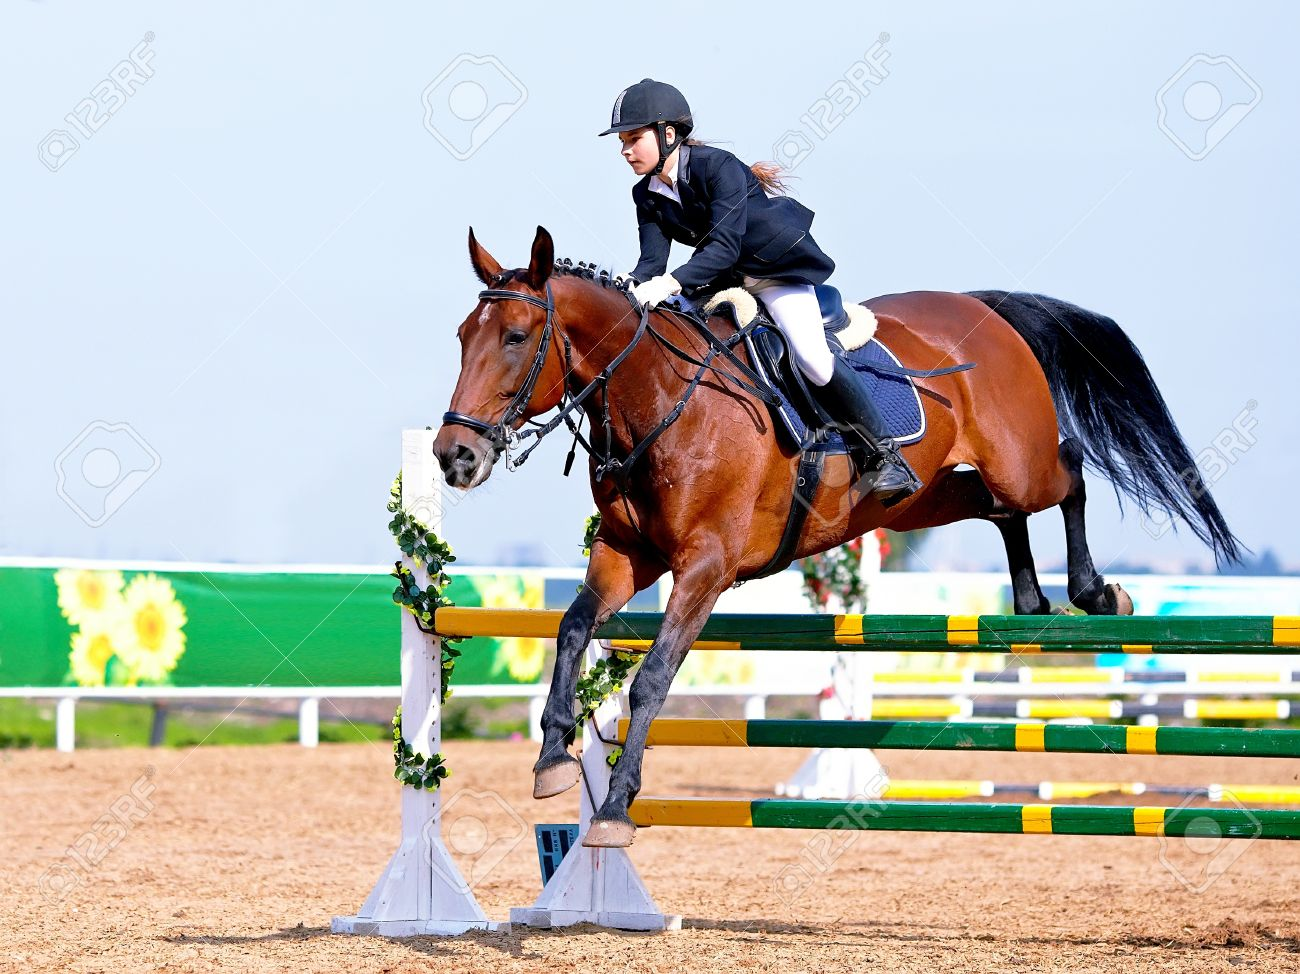 Equestrian sport. Show jumping. Overcoming of an obstacle. The sportswoman on a horse. The horsewoman on a red horse. Equestrianism. Horse riding. Horse racing. Rider on a horse. Standard-Bild - 21512324